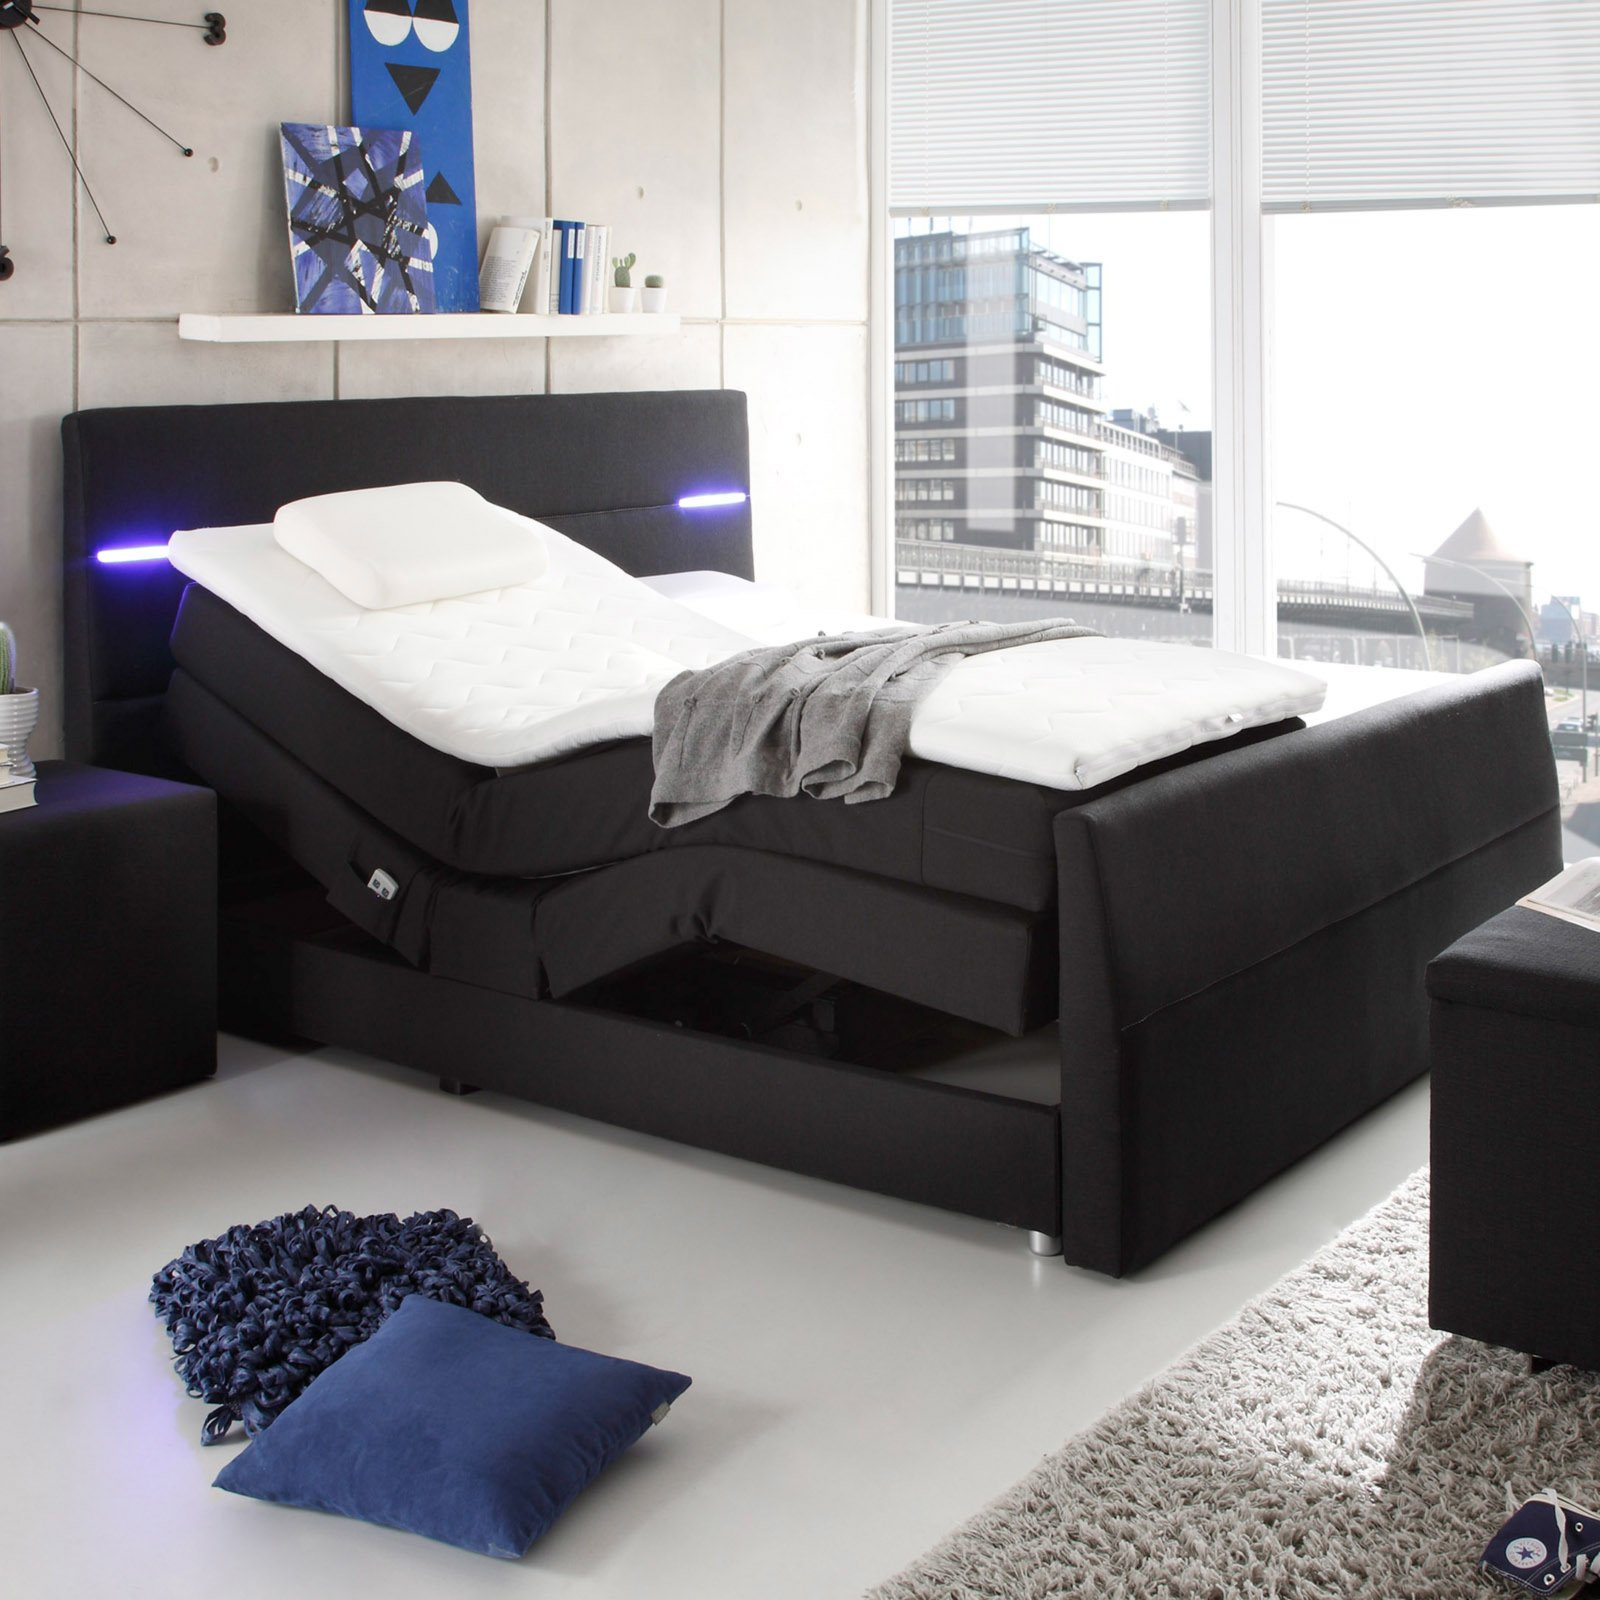 boxspringbett nebraska schwarz 180x200 cm ebay. Black Bedroom Furniture Sets. Home Design Ideas